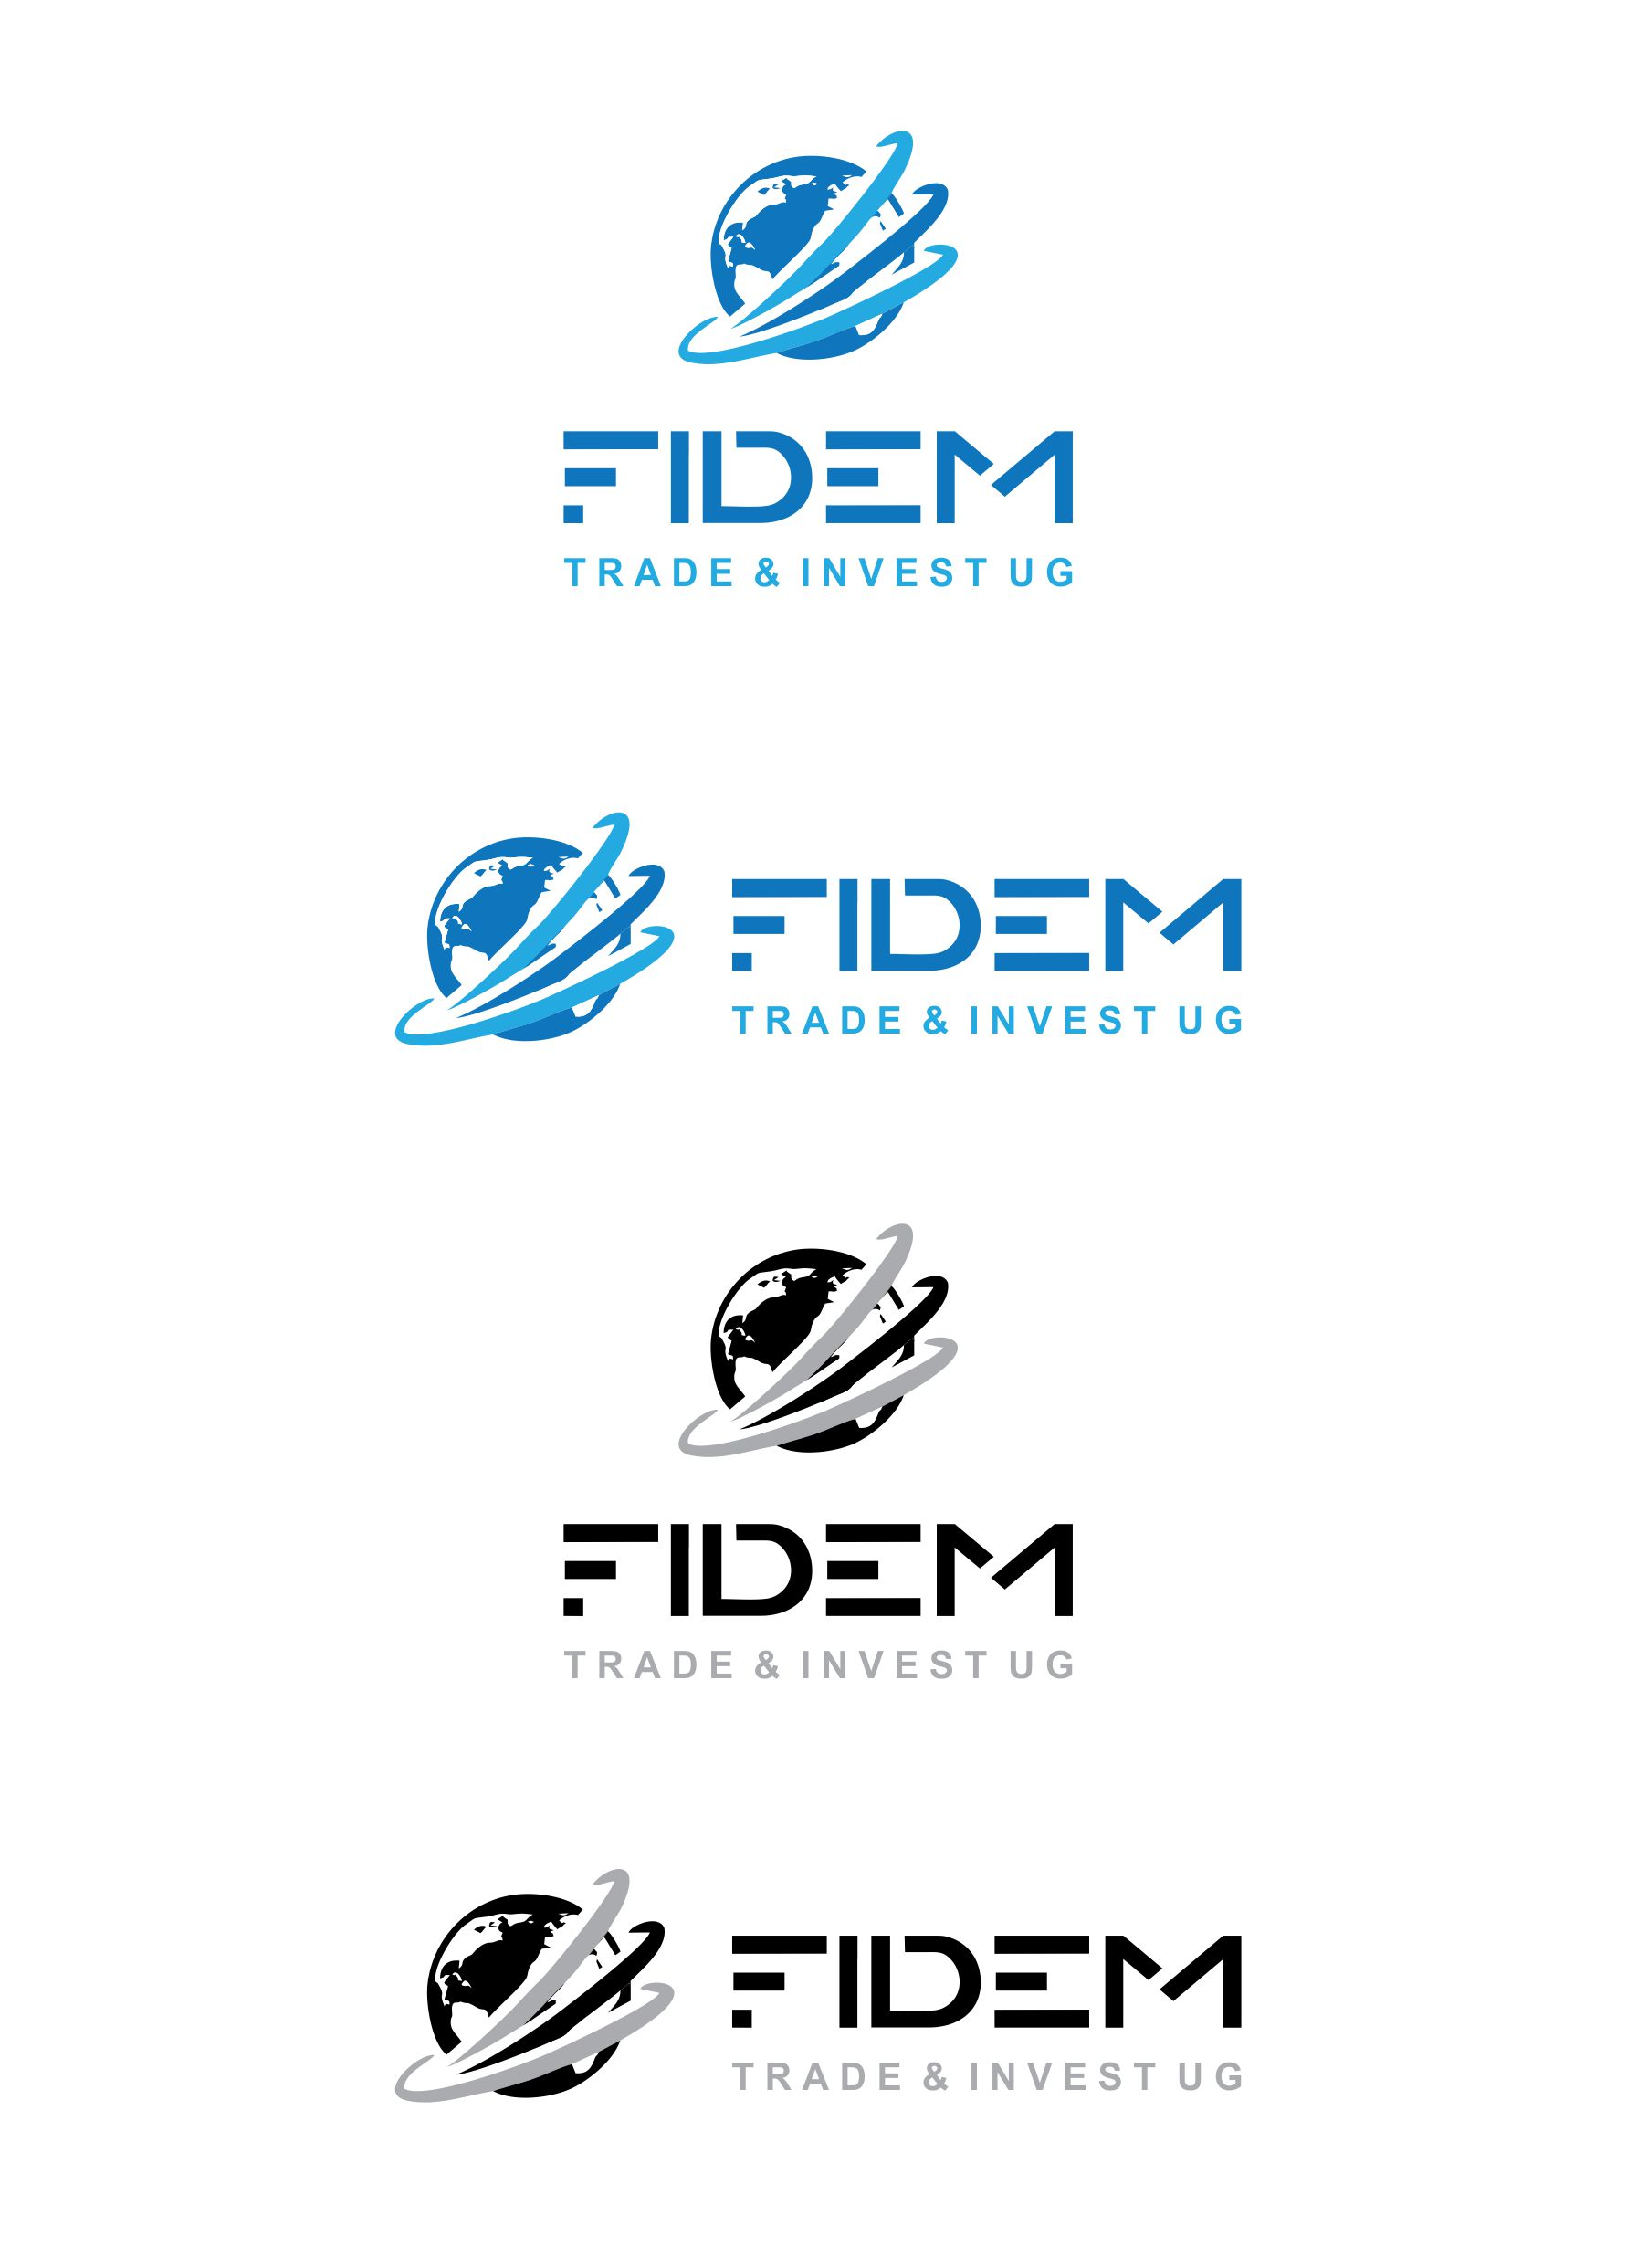 Logo Design by Muhammad Aslam - Entry No. 263 in the Logo Design Contest Professional Logo Design for FIDEM Trade & Invest UG.